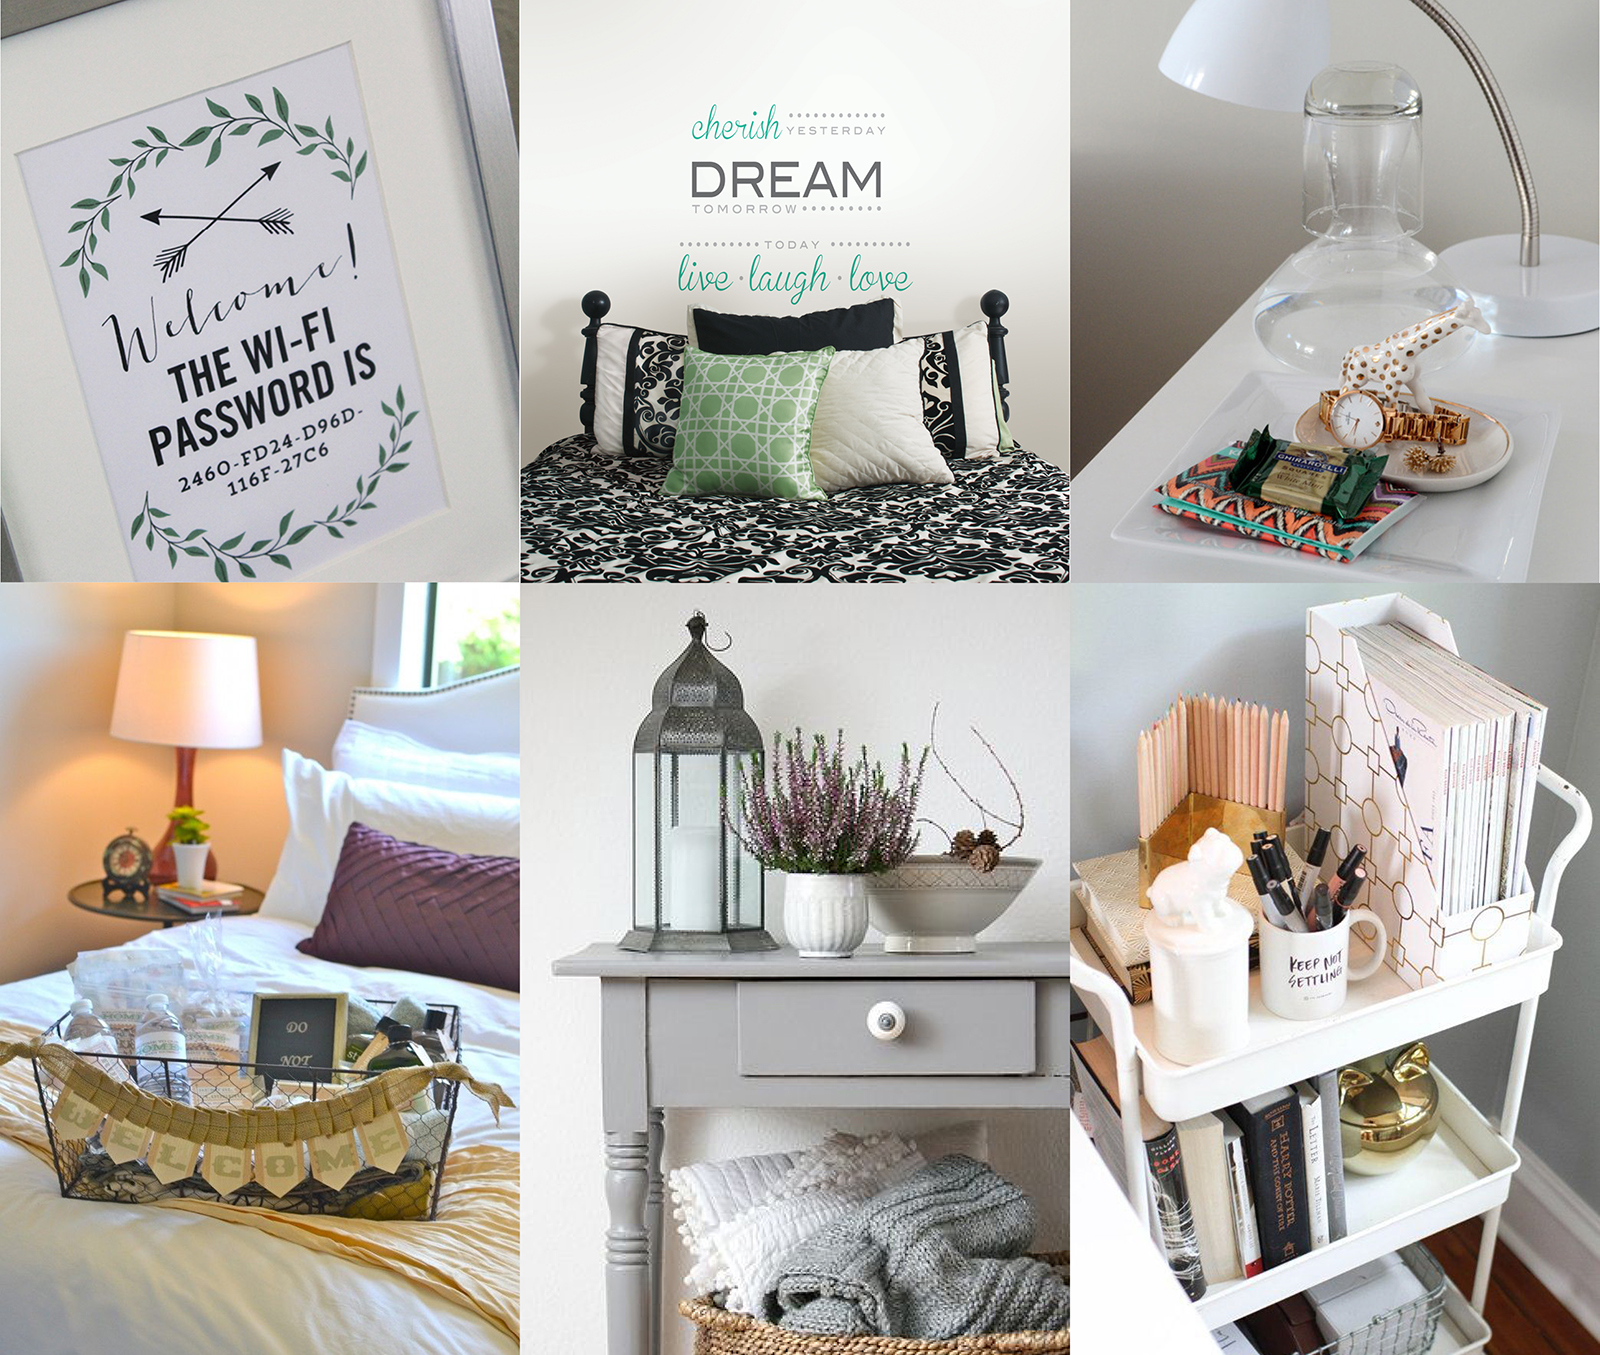 Extra Touches for Happy Guest Room Decor ideas this holiday